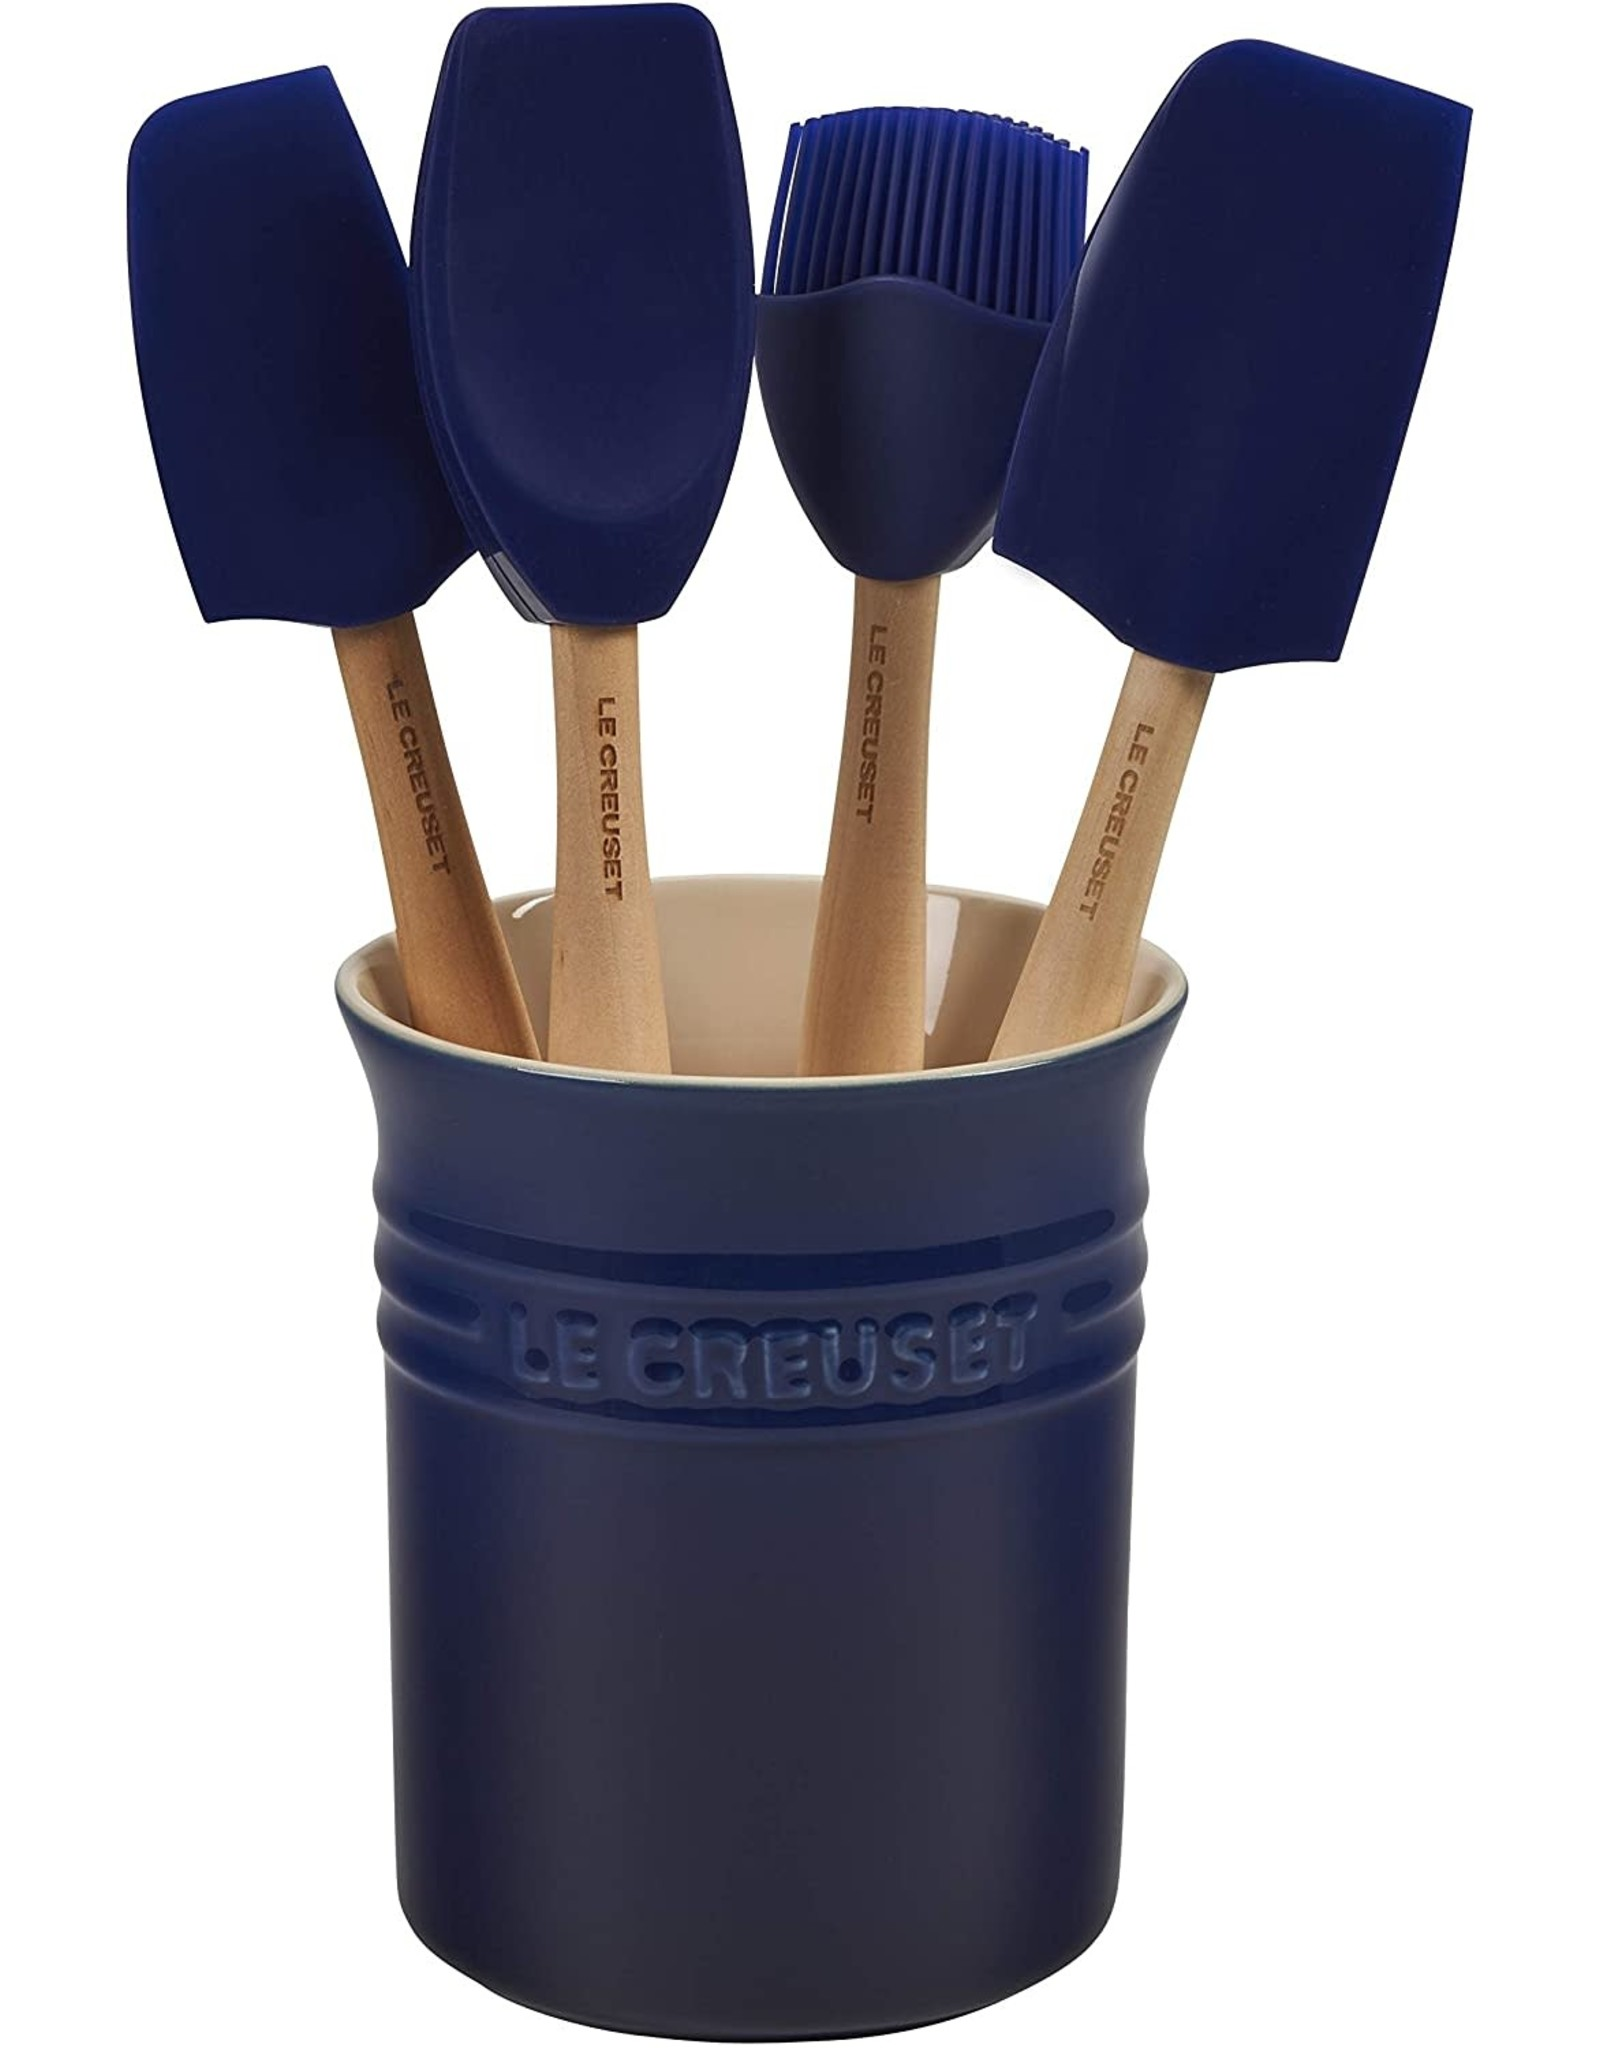 Le Creuset Craft Series 5pc Utensil Set - Indigo